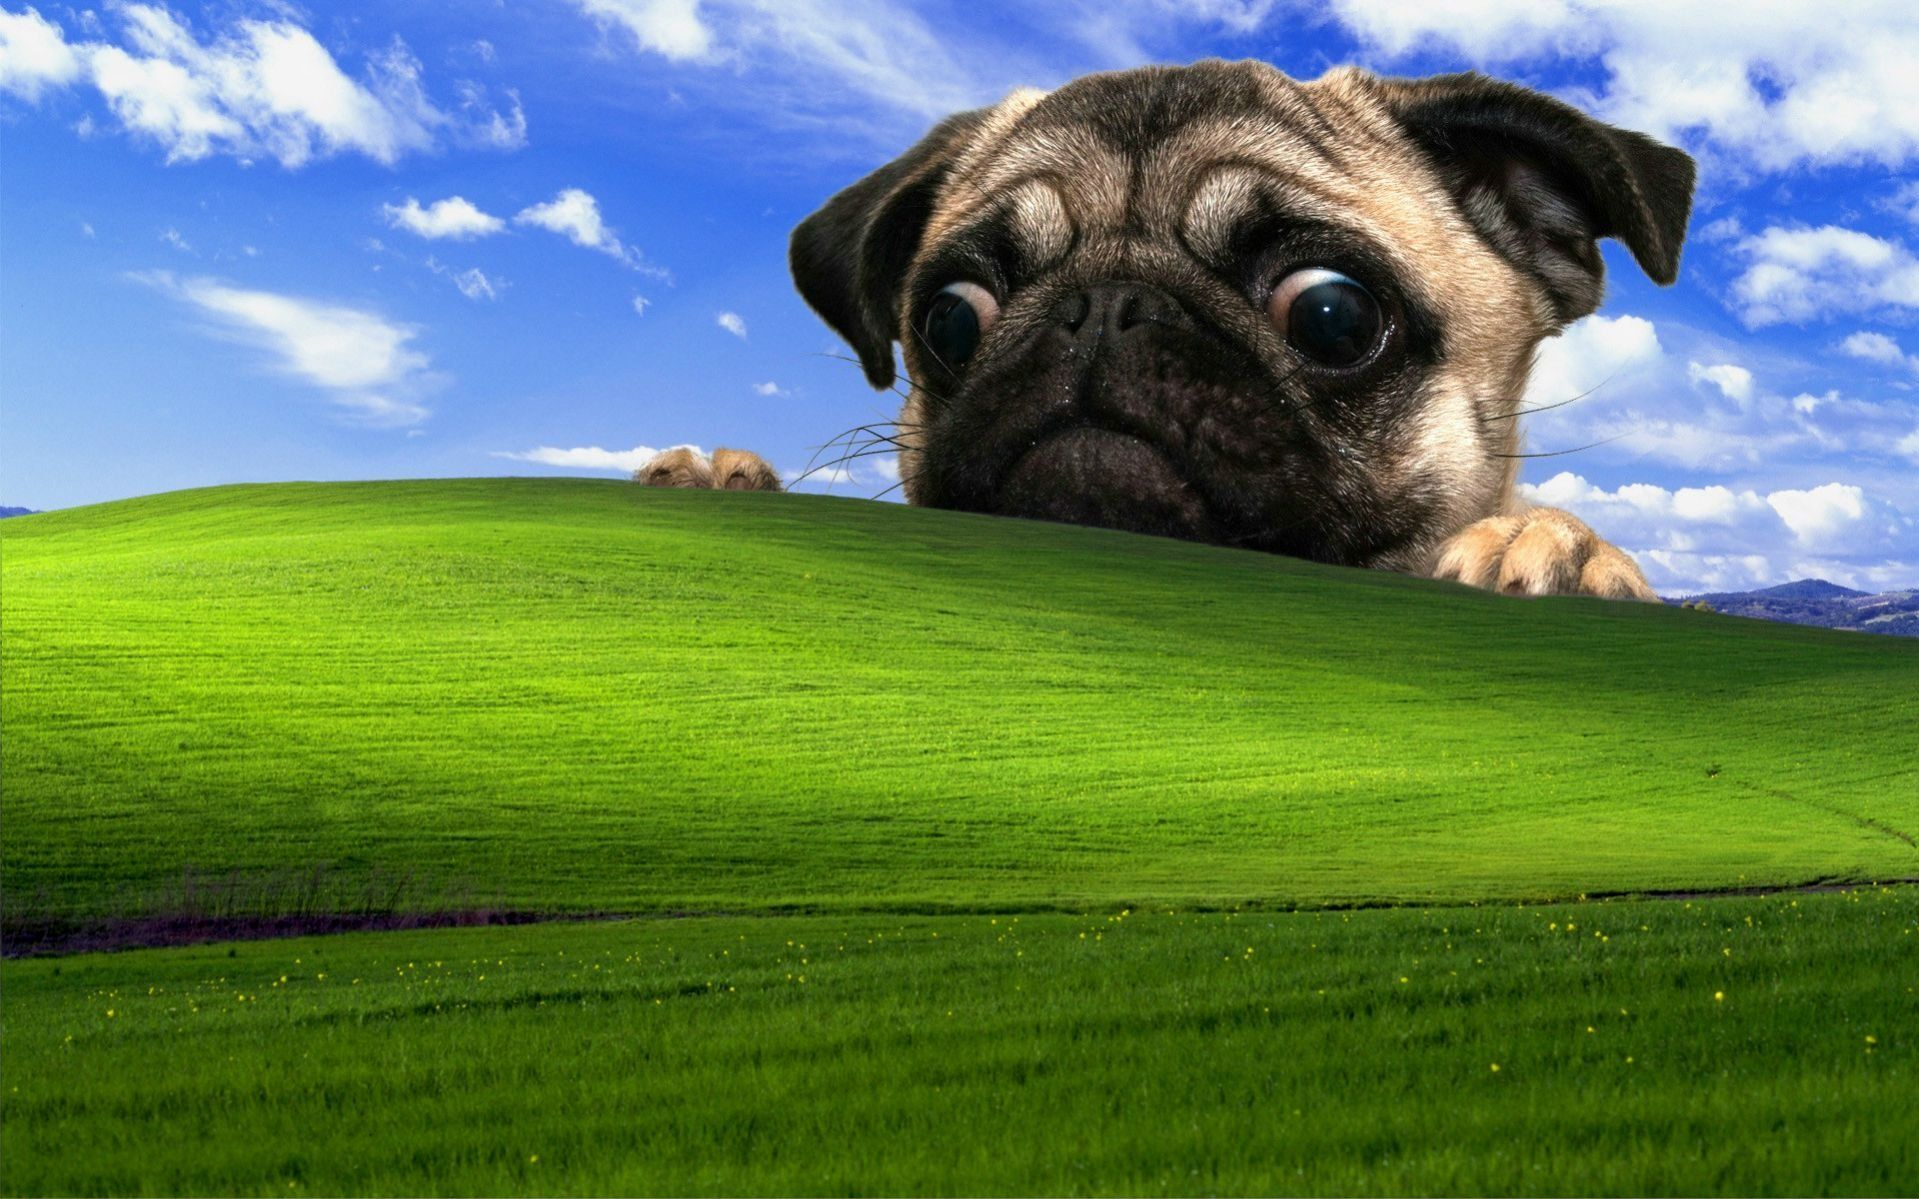 wallpaper for windows xp | hd wallpapers | pinterest | windows xp